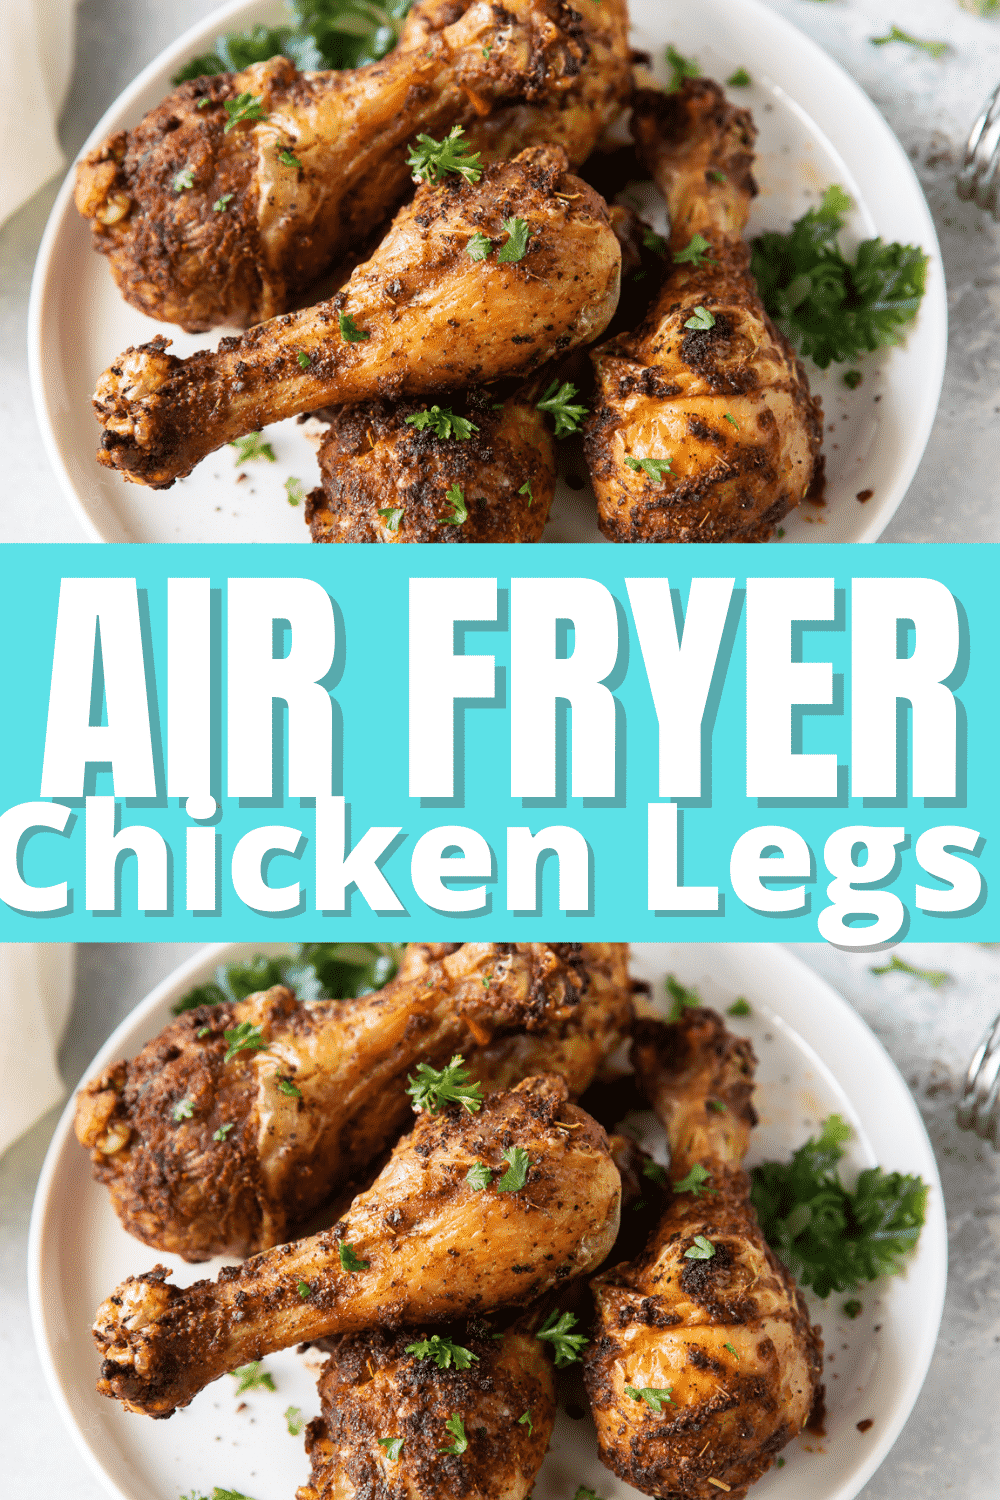 Air Fryer Chicken Legs is an inexpensive and simple recipe to make in your air fryer. Seasoned perfectly, this chicken will come out of the air fryer with crispy skin and juicy, tender meat. Your family will eat this up! #airfryer #chickenlegs via @vegetarianmamma